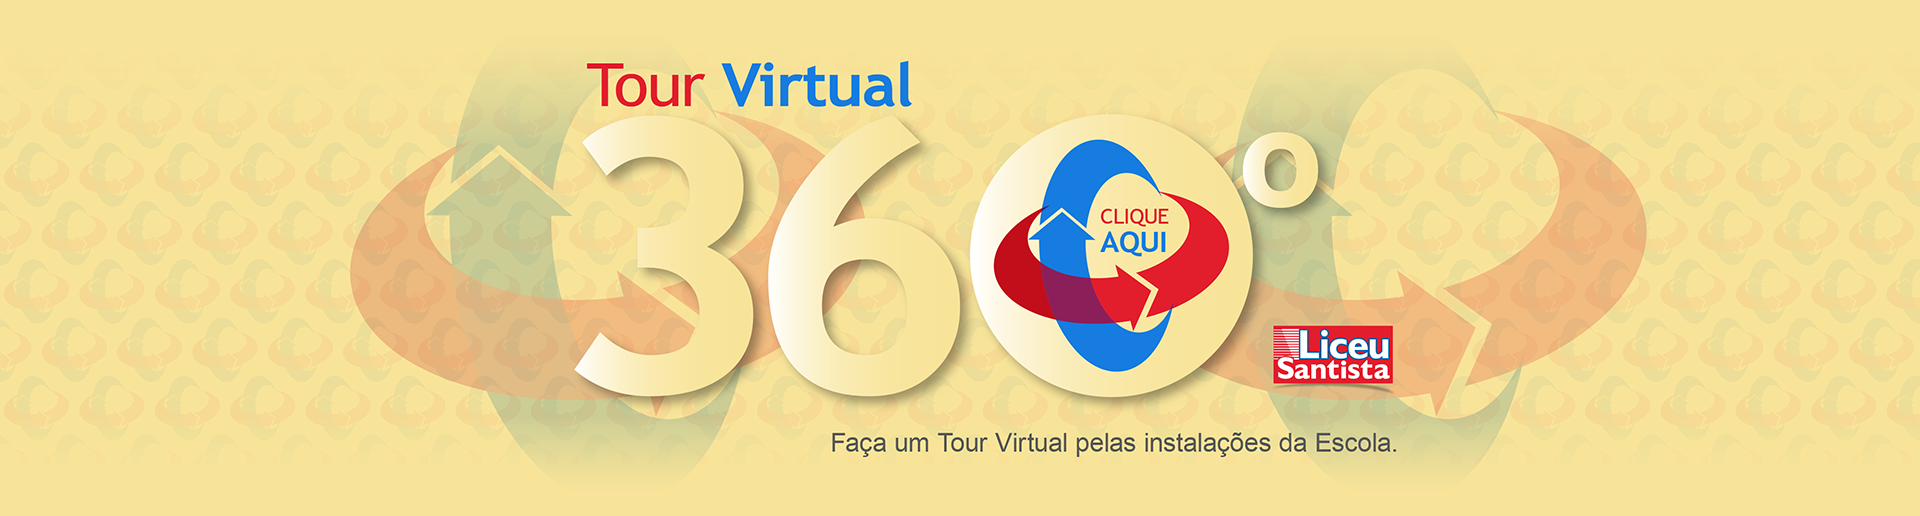 LS_Tour_Virtual_360-01